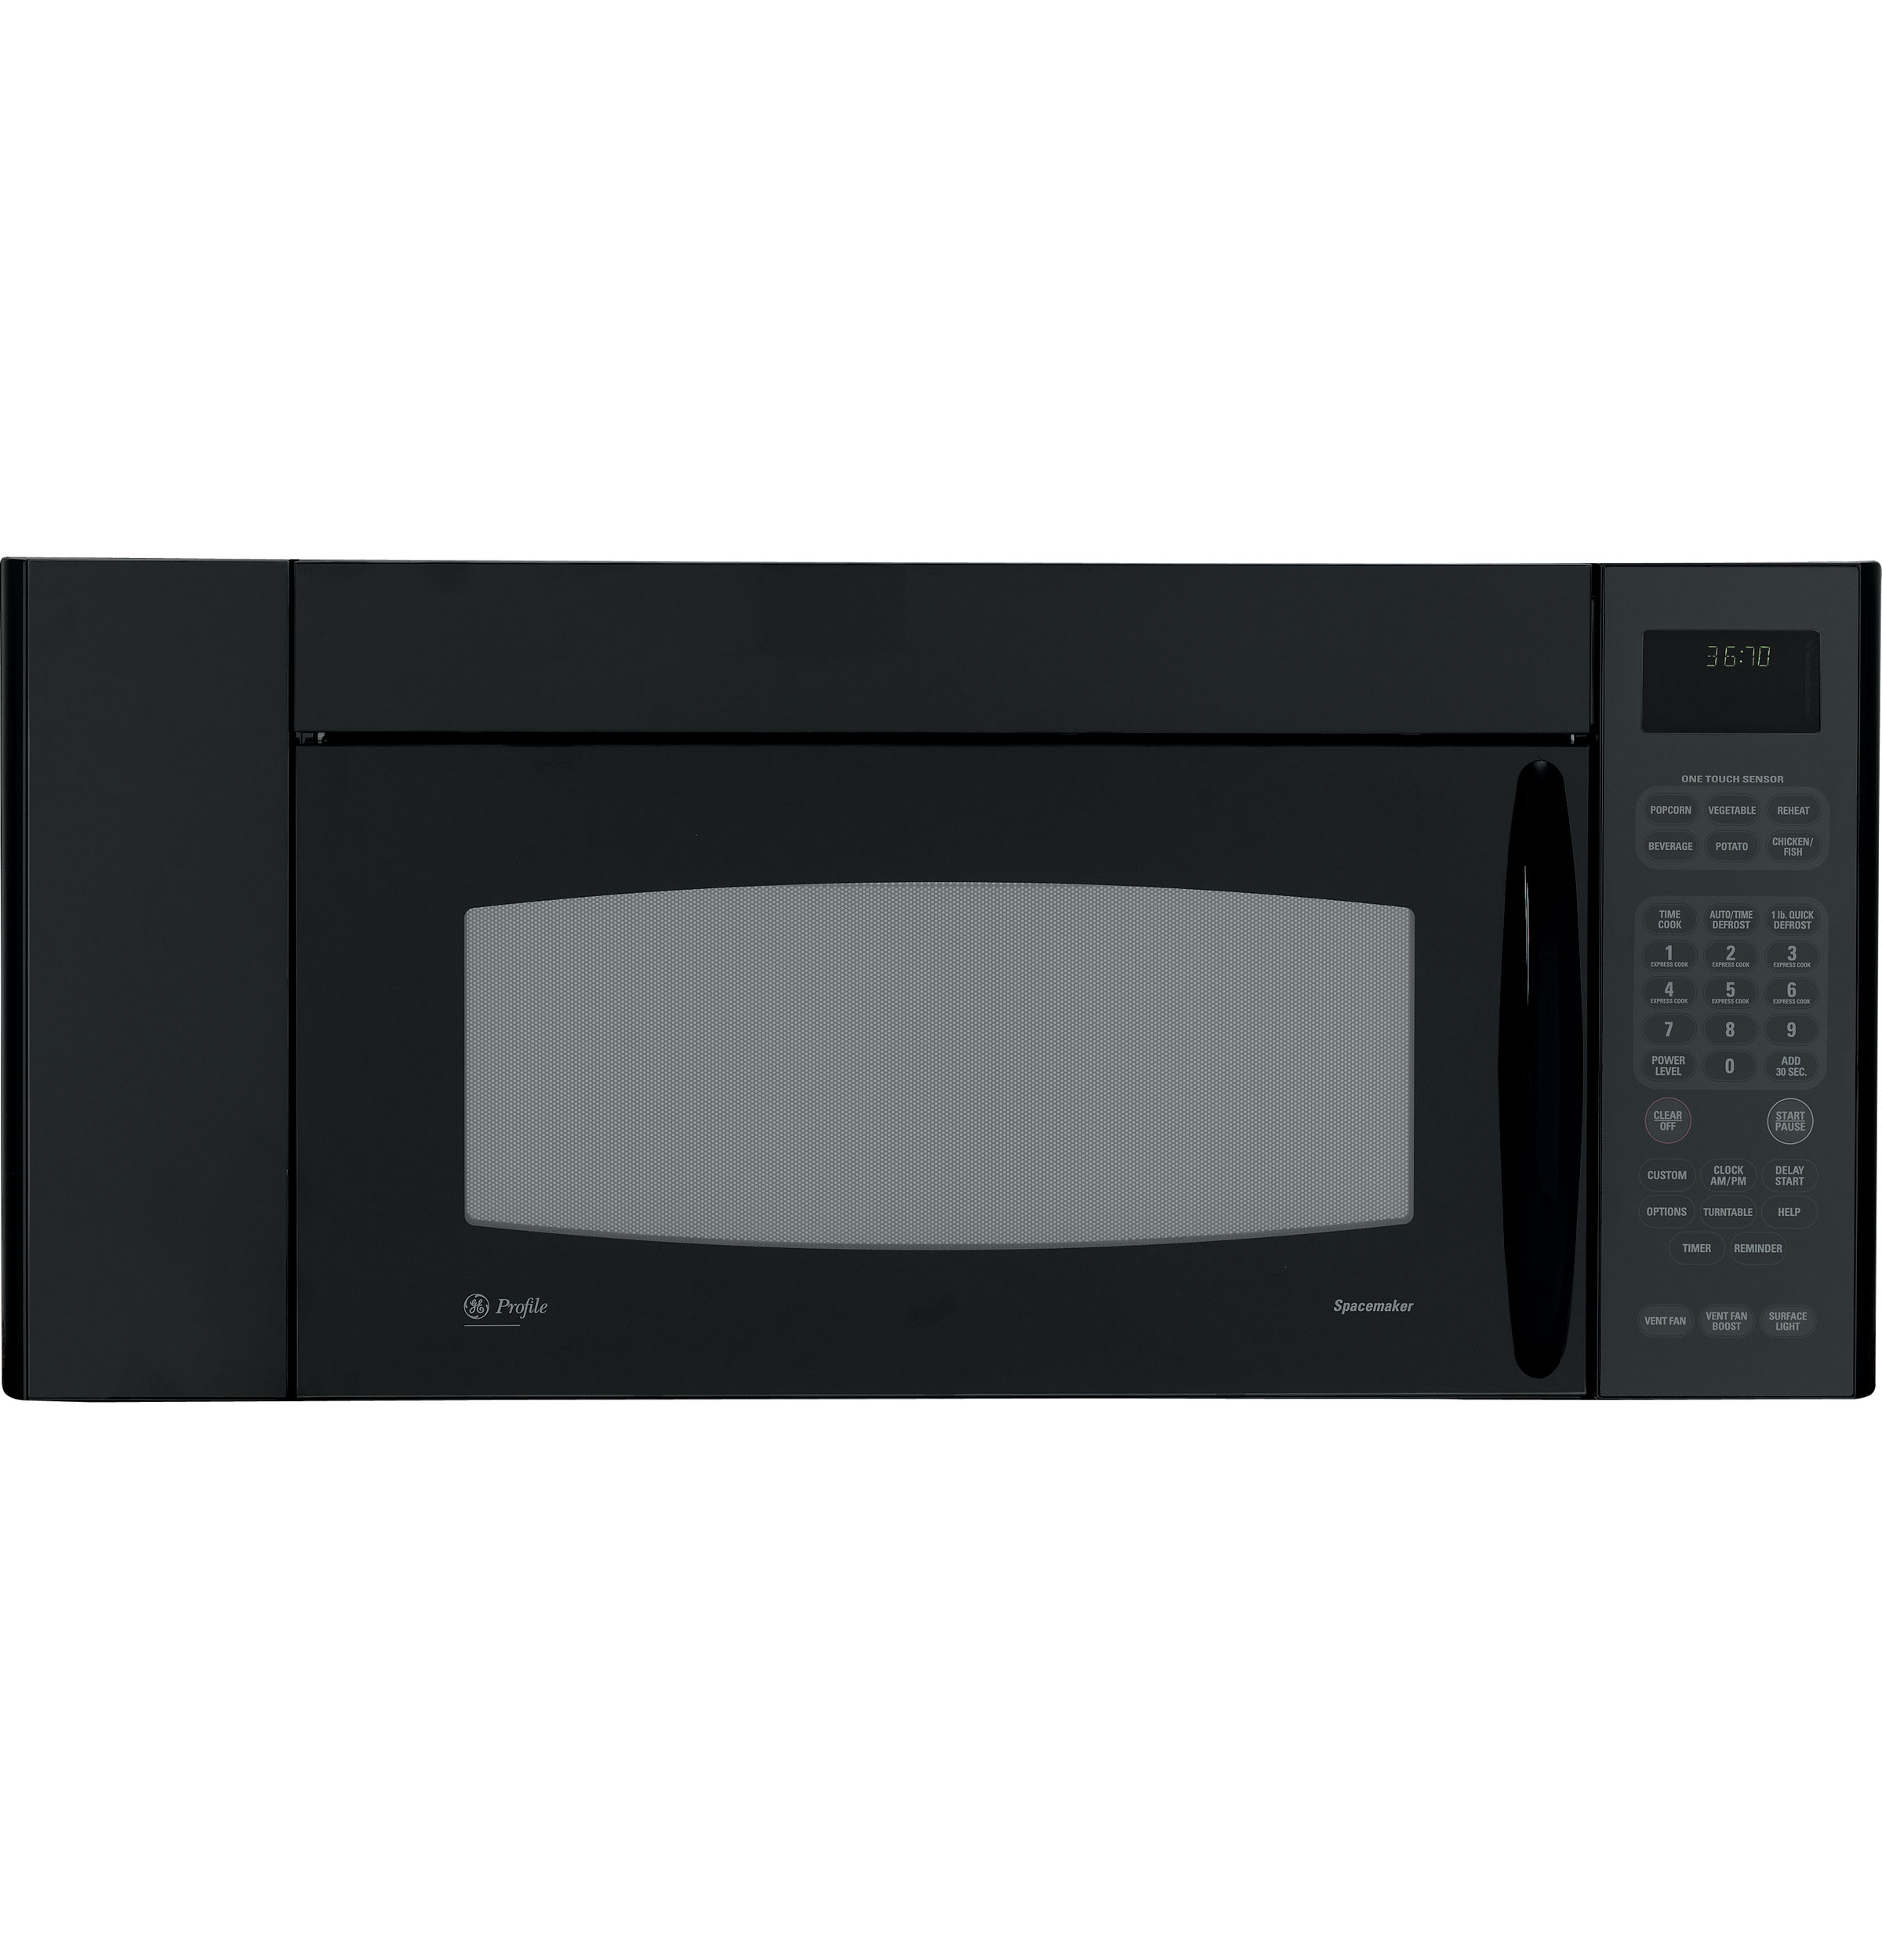 Ge Profile Emaker Xl 1800 36 Microwave Oven Jvm3670bf